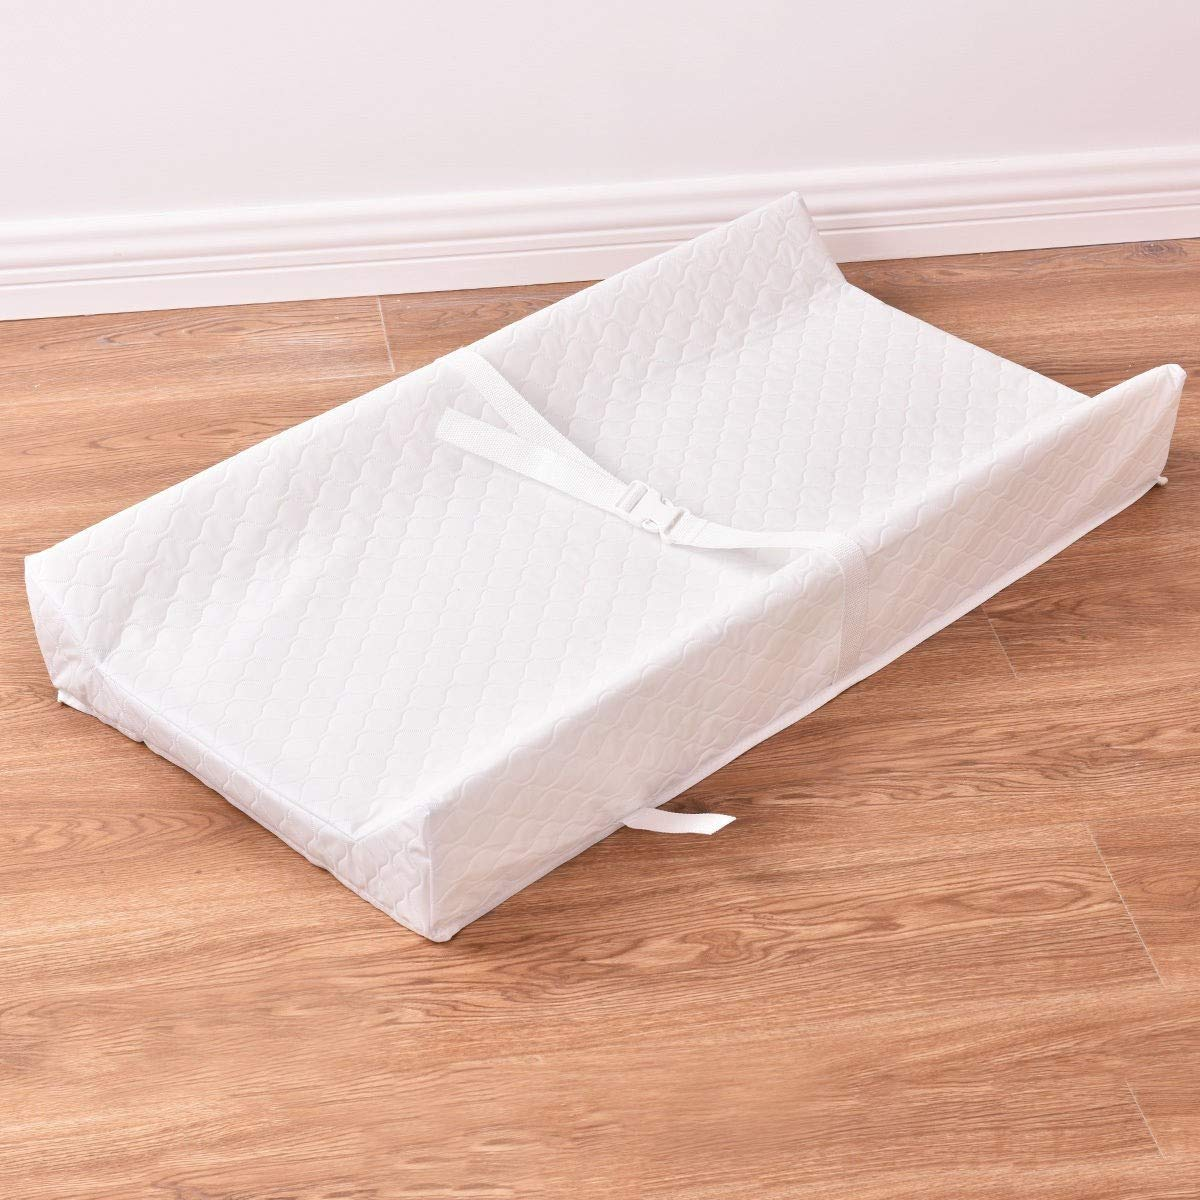 Mandycng 32'' Contour Changing Baby Pad Waterproof Nursery Cushion, Easy to Clean Quilted Cover W Non-Skid Bottom, Fits to Standard Tables Dresser Tops for Best Infant Diaper Change by Mandycng